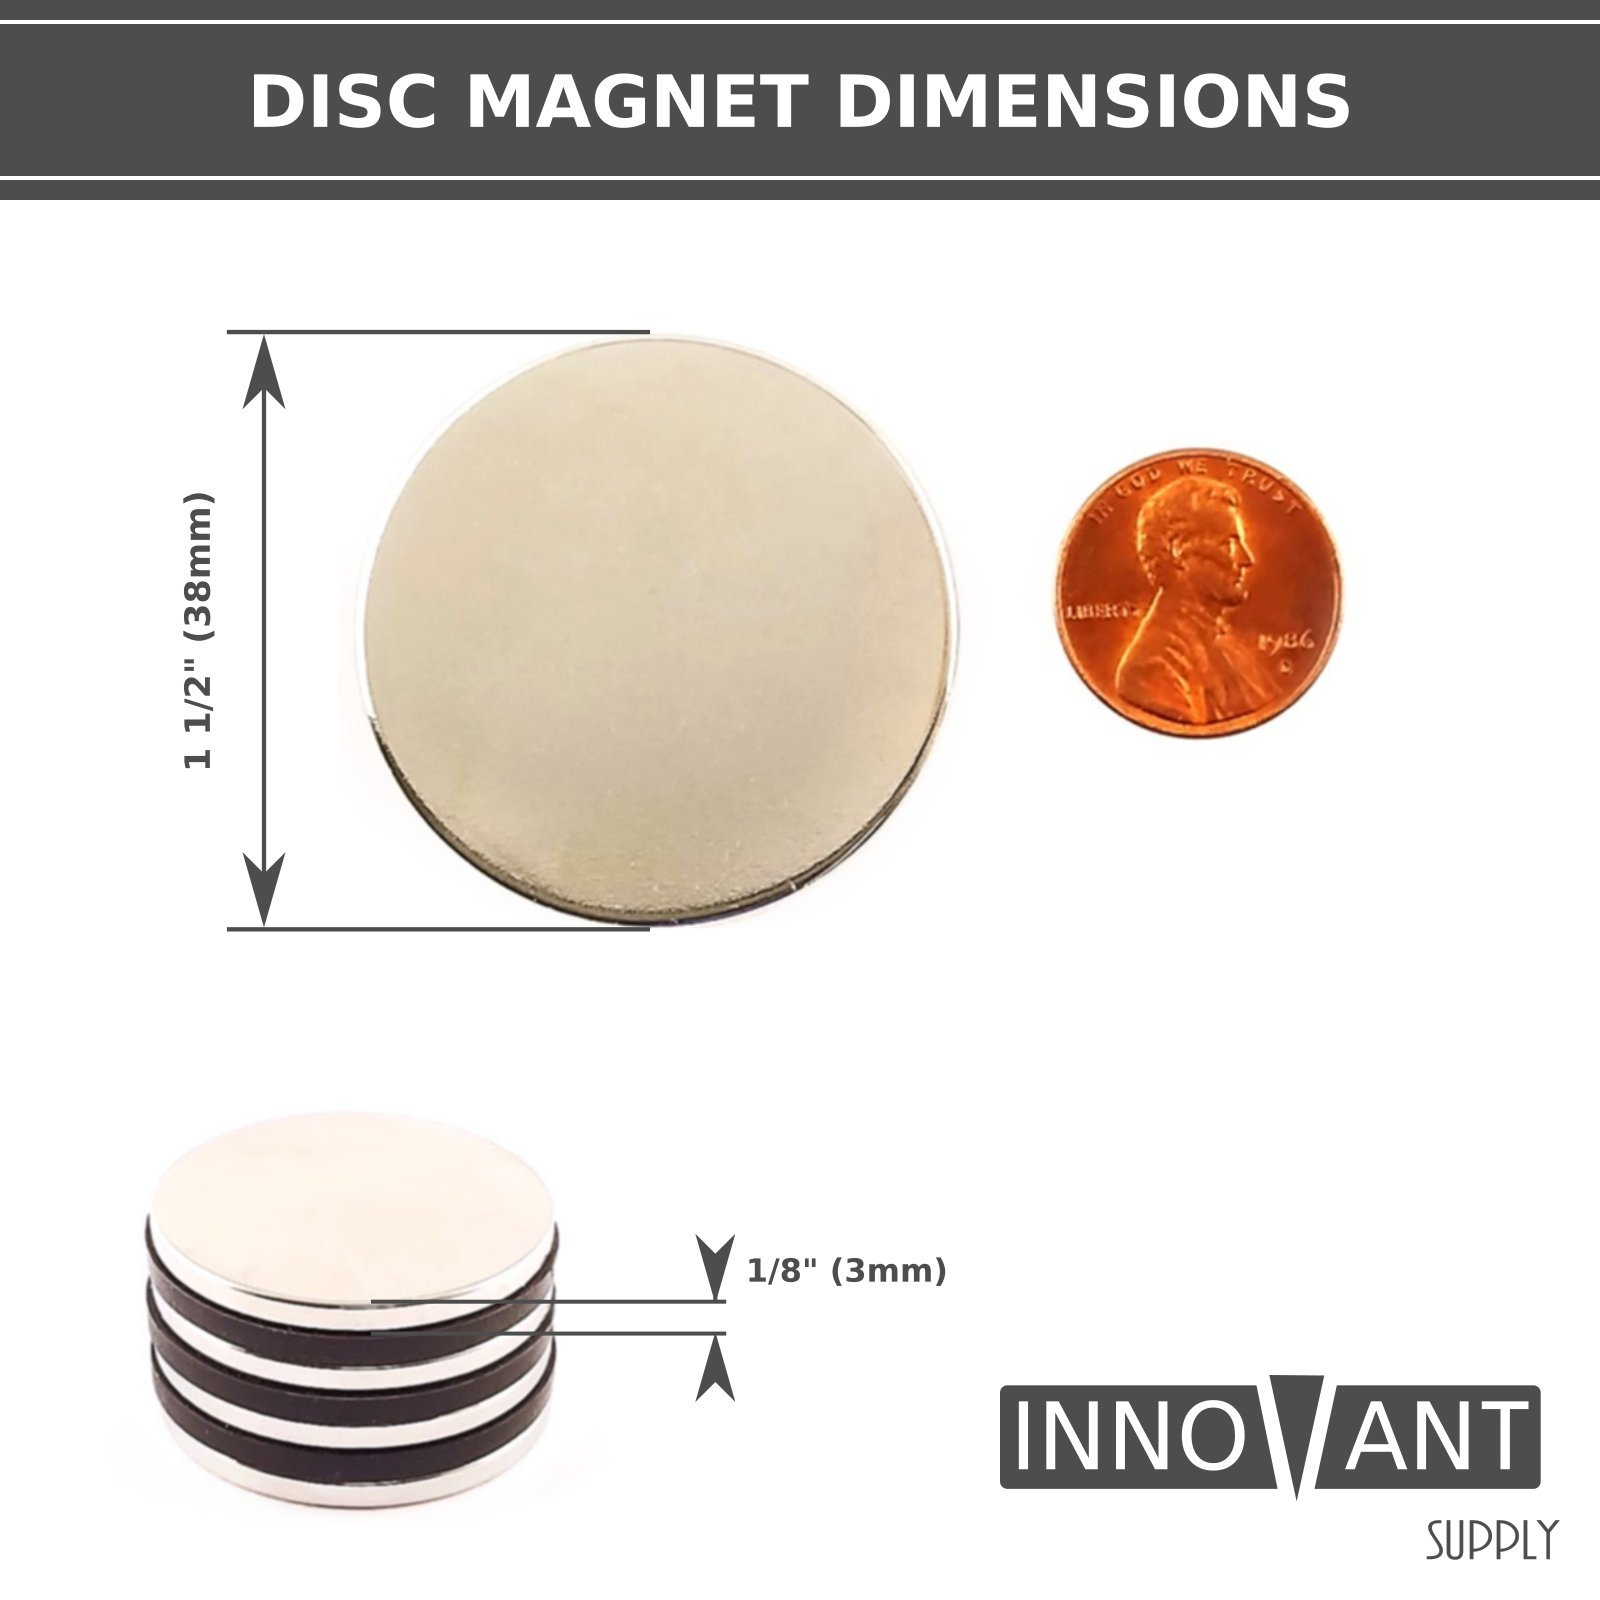 INNOVANT 4 Pack Neodymium Disc Magnets 1 1/2'' d x 1/8'' h N45 Grade Strong Permanent Rare Earth Magnets - Best for DIY Arts & Crafts Projects, School Classroom Science Project & Office or Work Supply by Innovant Supply (Image #6)